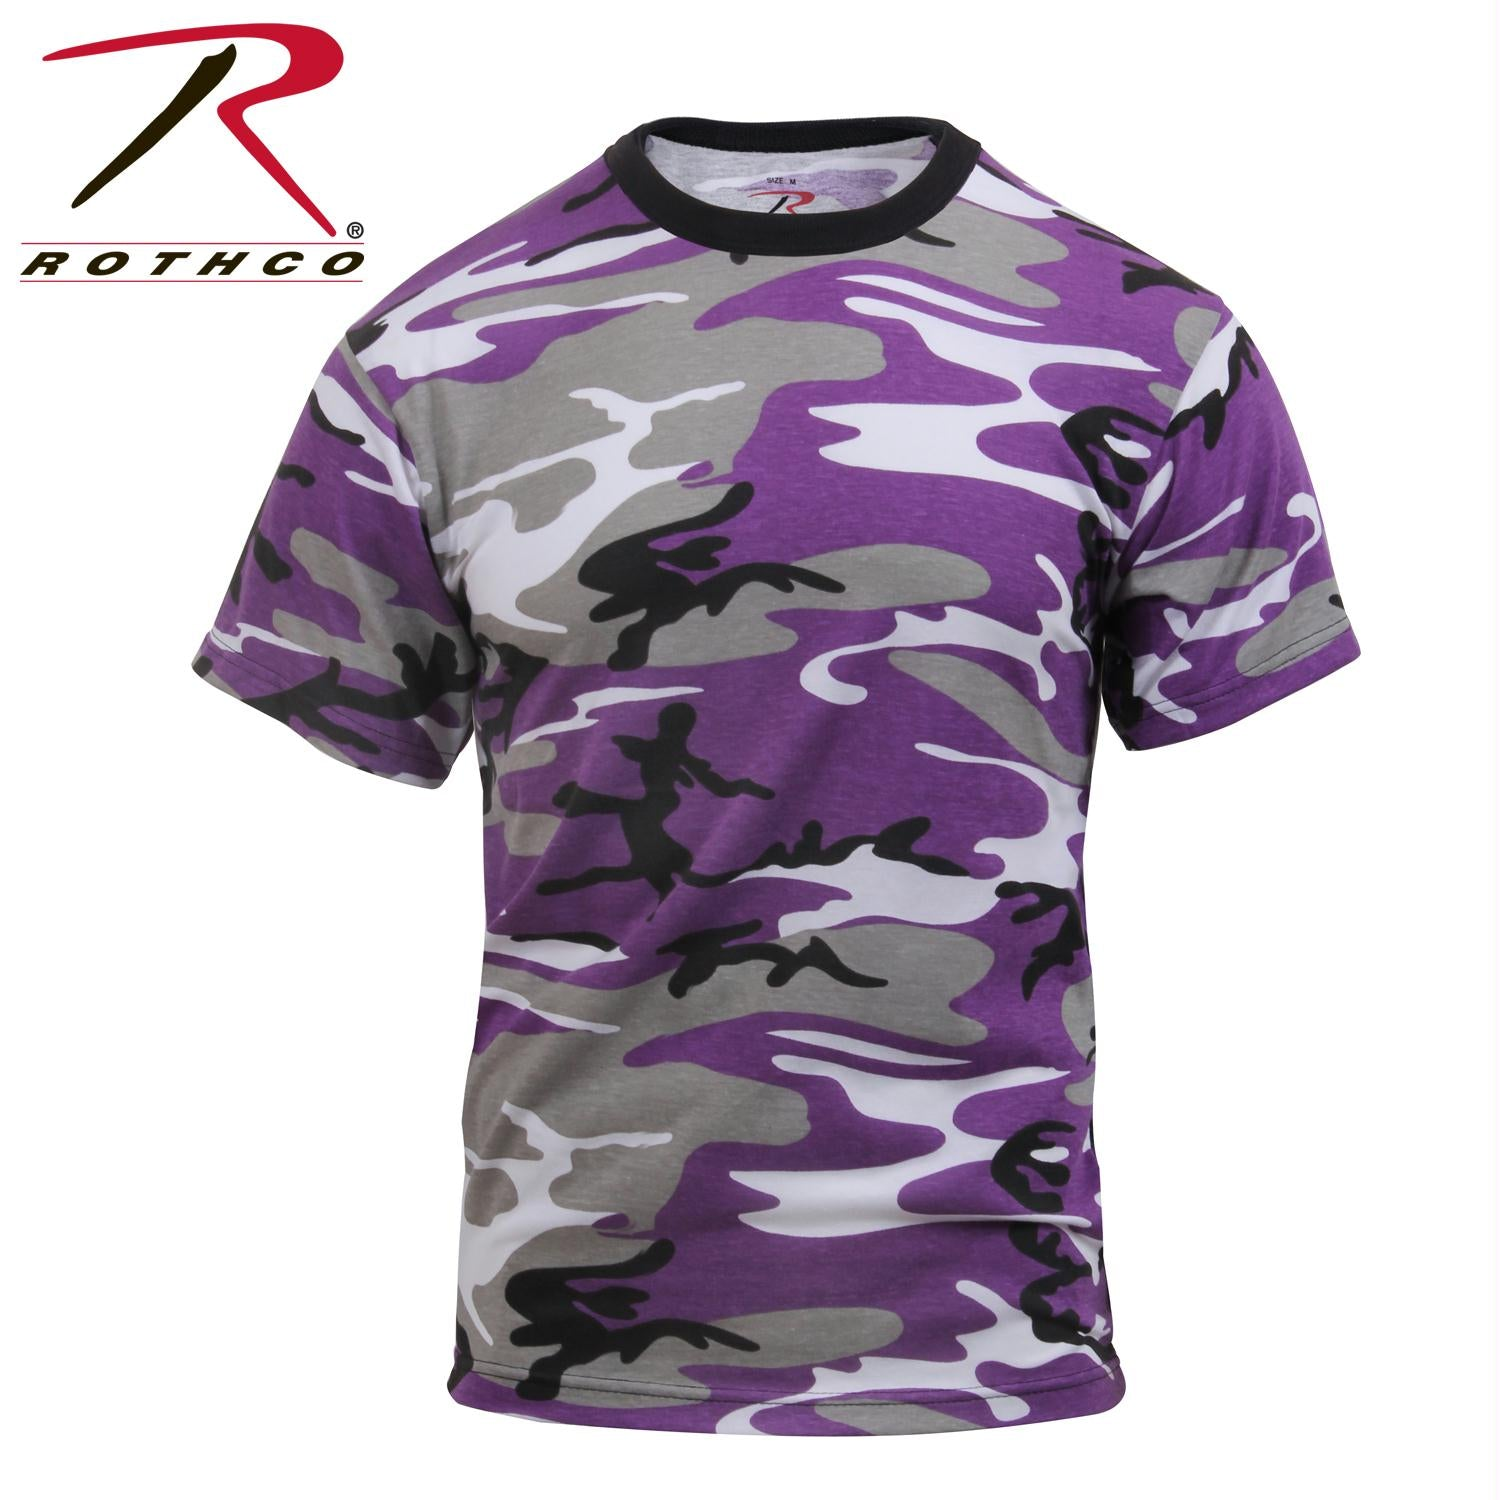 Rothco Colored Camo T-Shirts - Ultra Violet Camo / XS